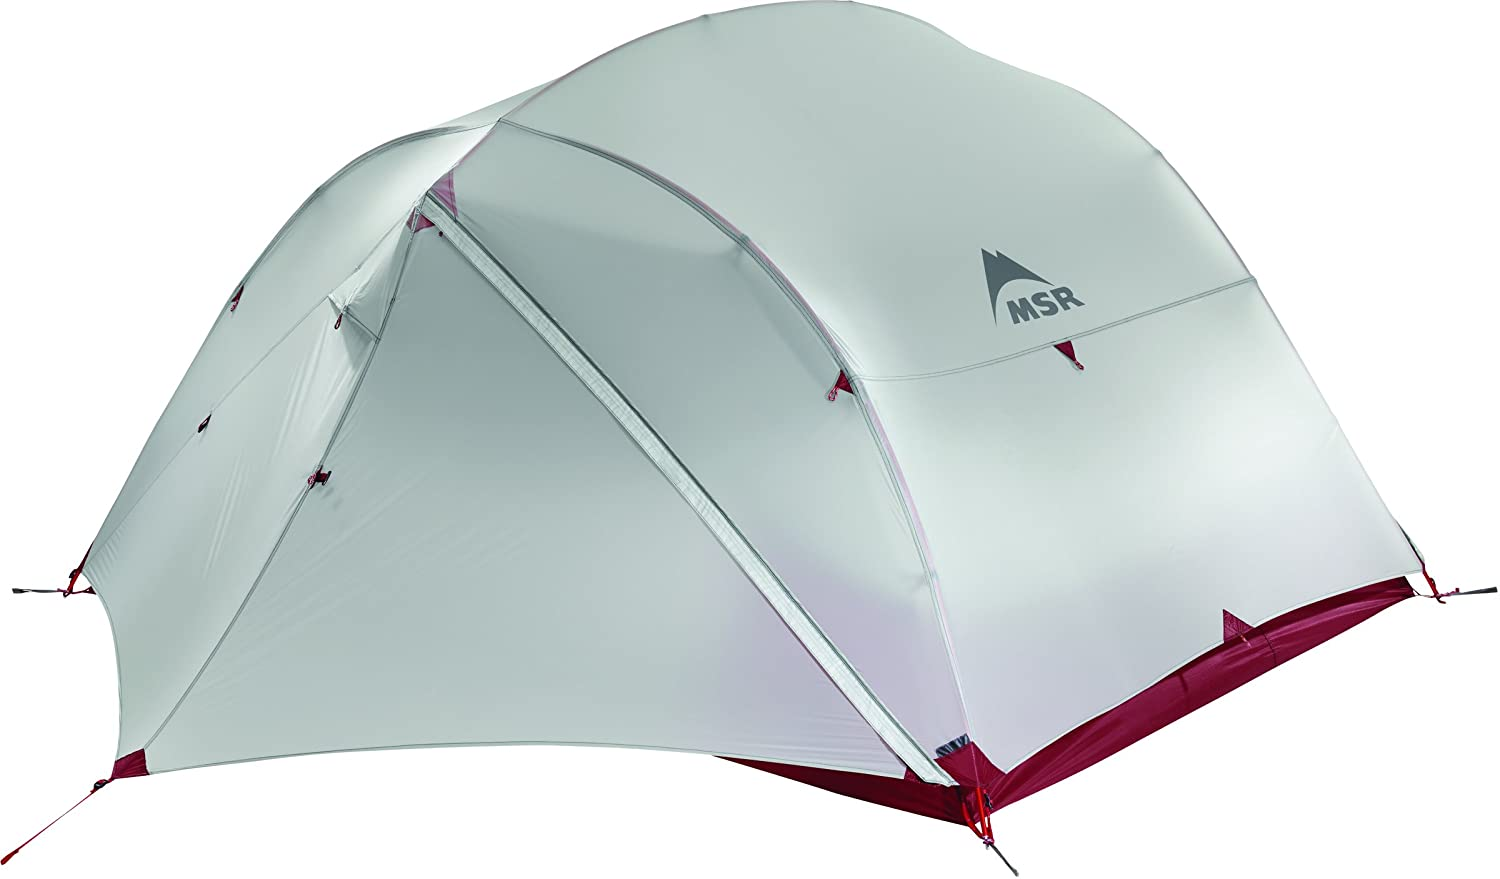 sc 1 st  Amazon.com & Amazon.com: MSR Mutha Hubba NX Tent Red: Sports u0026 Outdoors